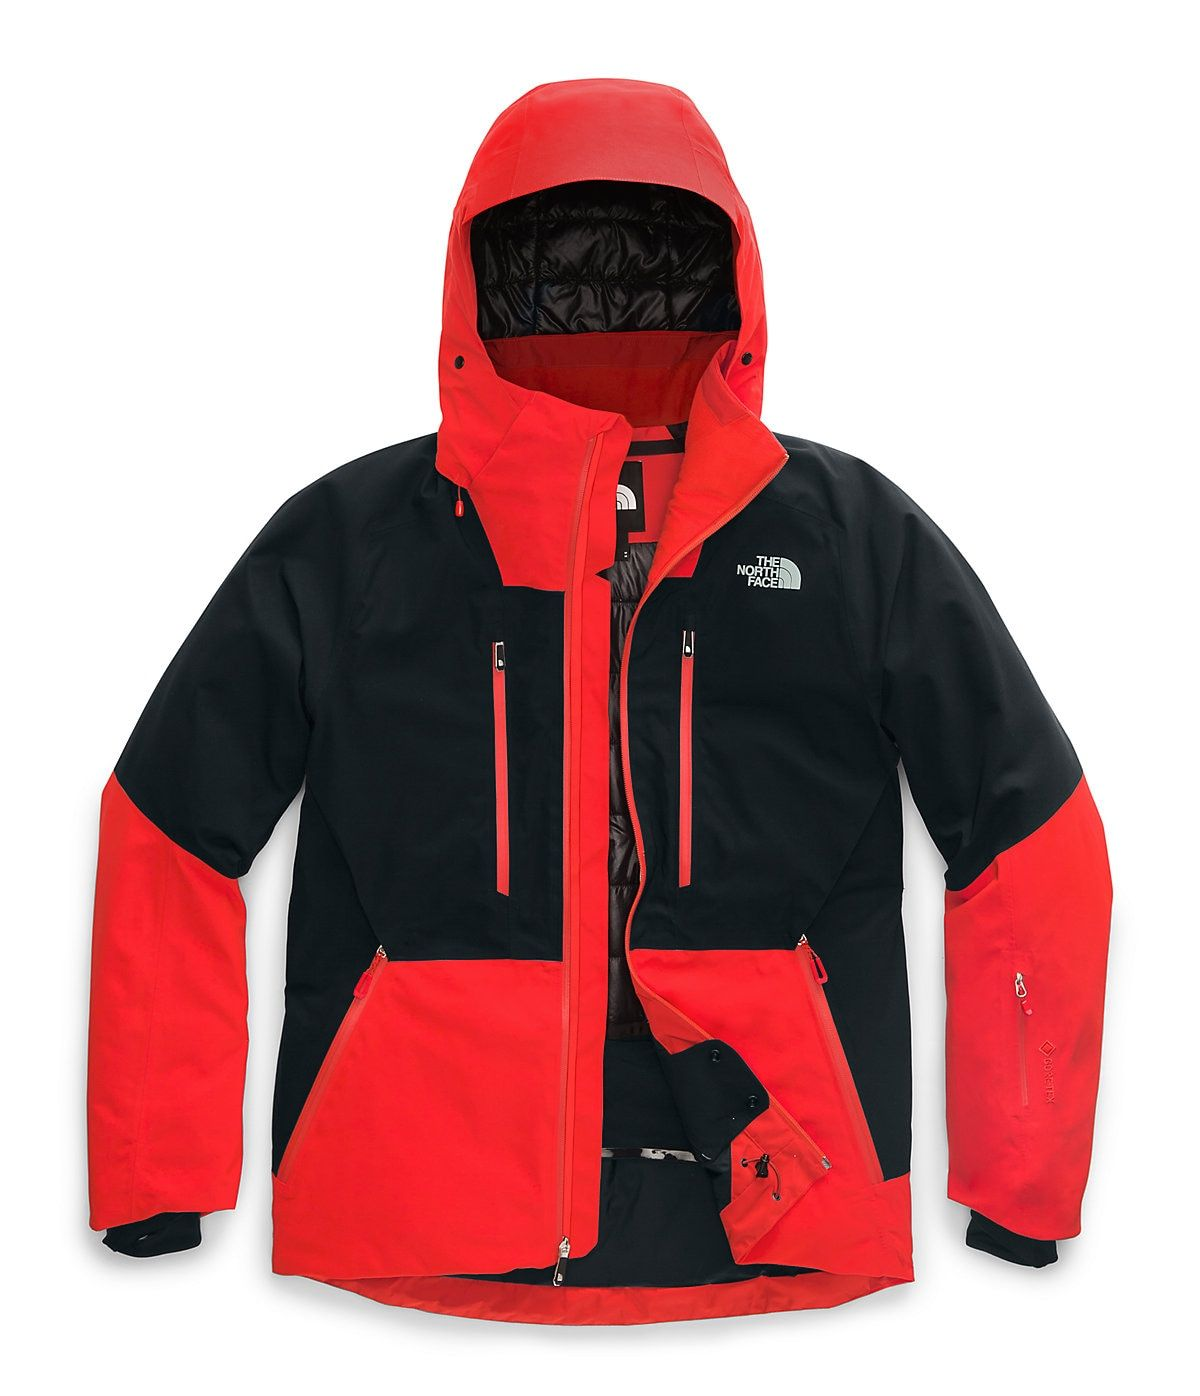 Men S Anonym Jacket Free Shipping The North Face North Face Jacket Mens Red North Face Jacket Mens Jackets [ 1396 x 1200 Pixel ]